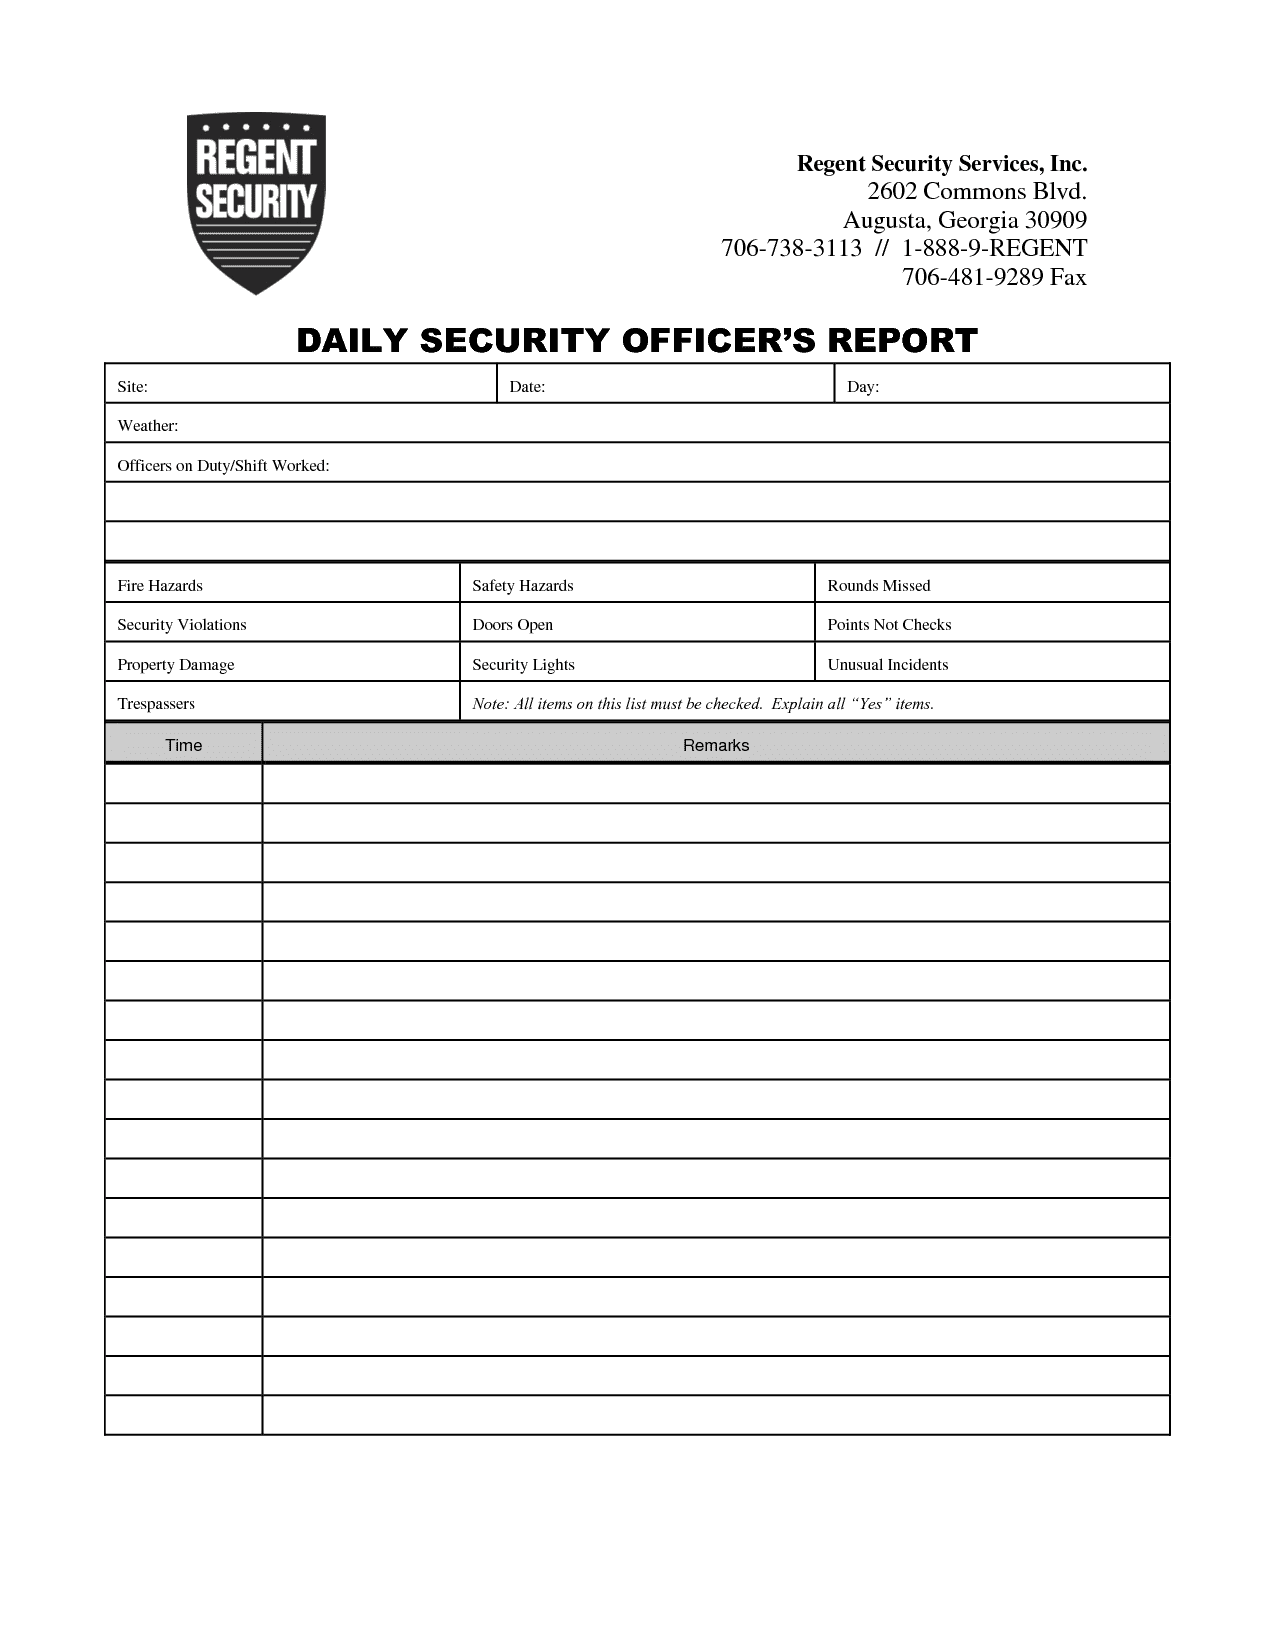 Incident Report Example For Security Guard And Security Patrol Report Example